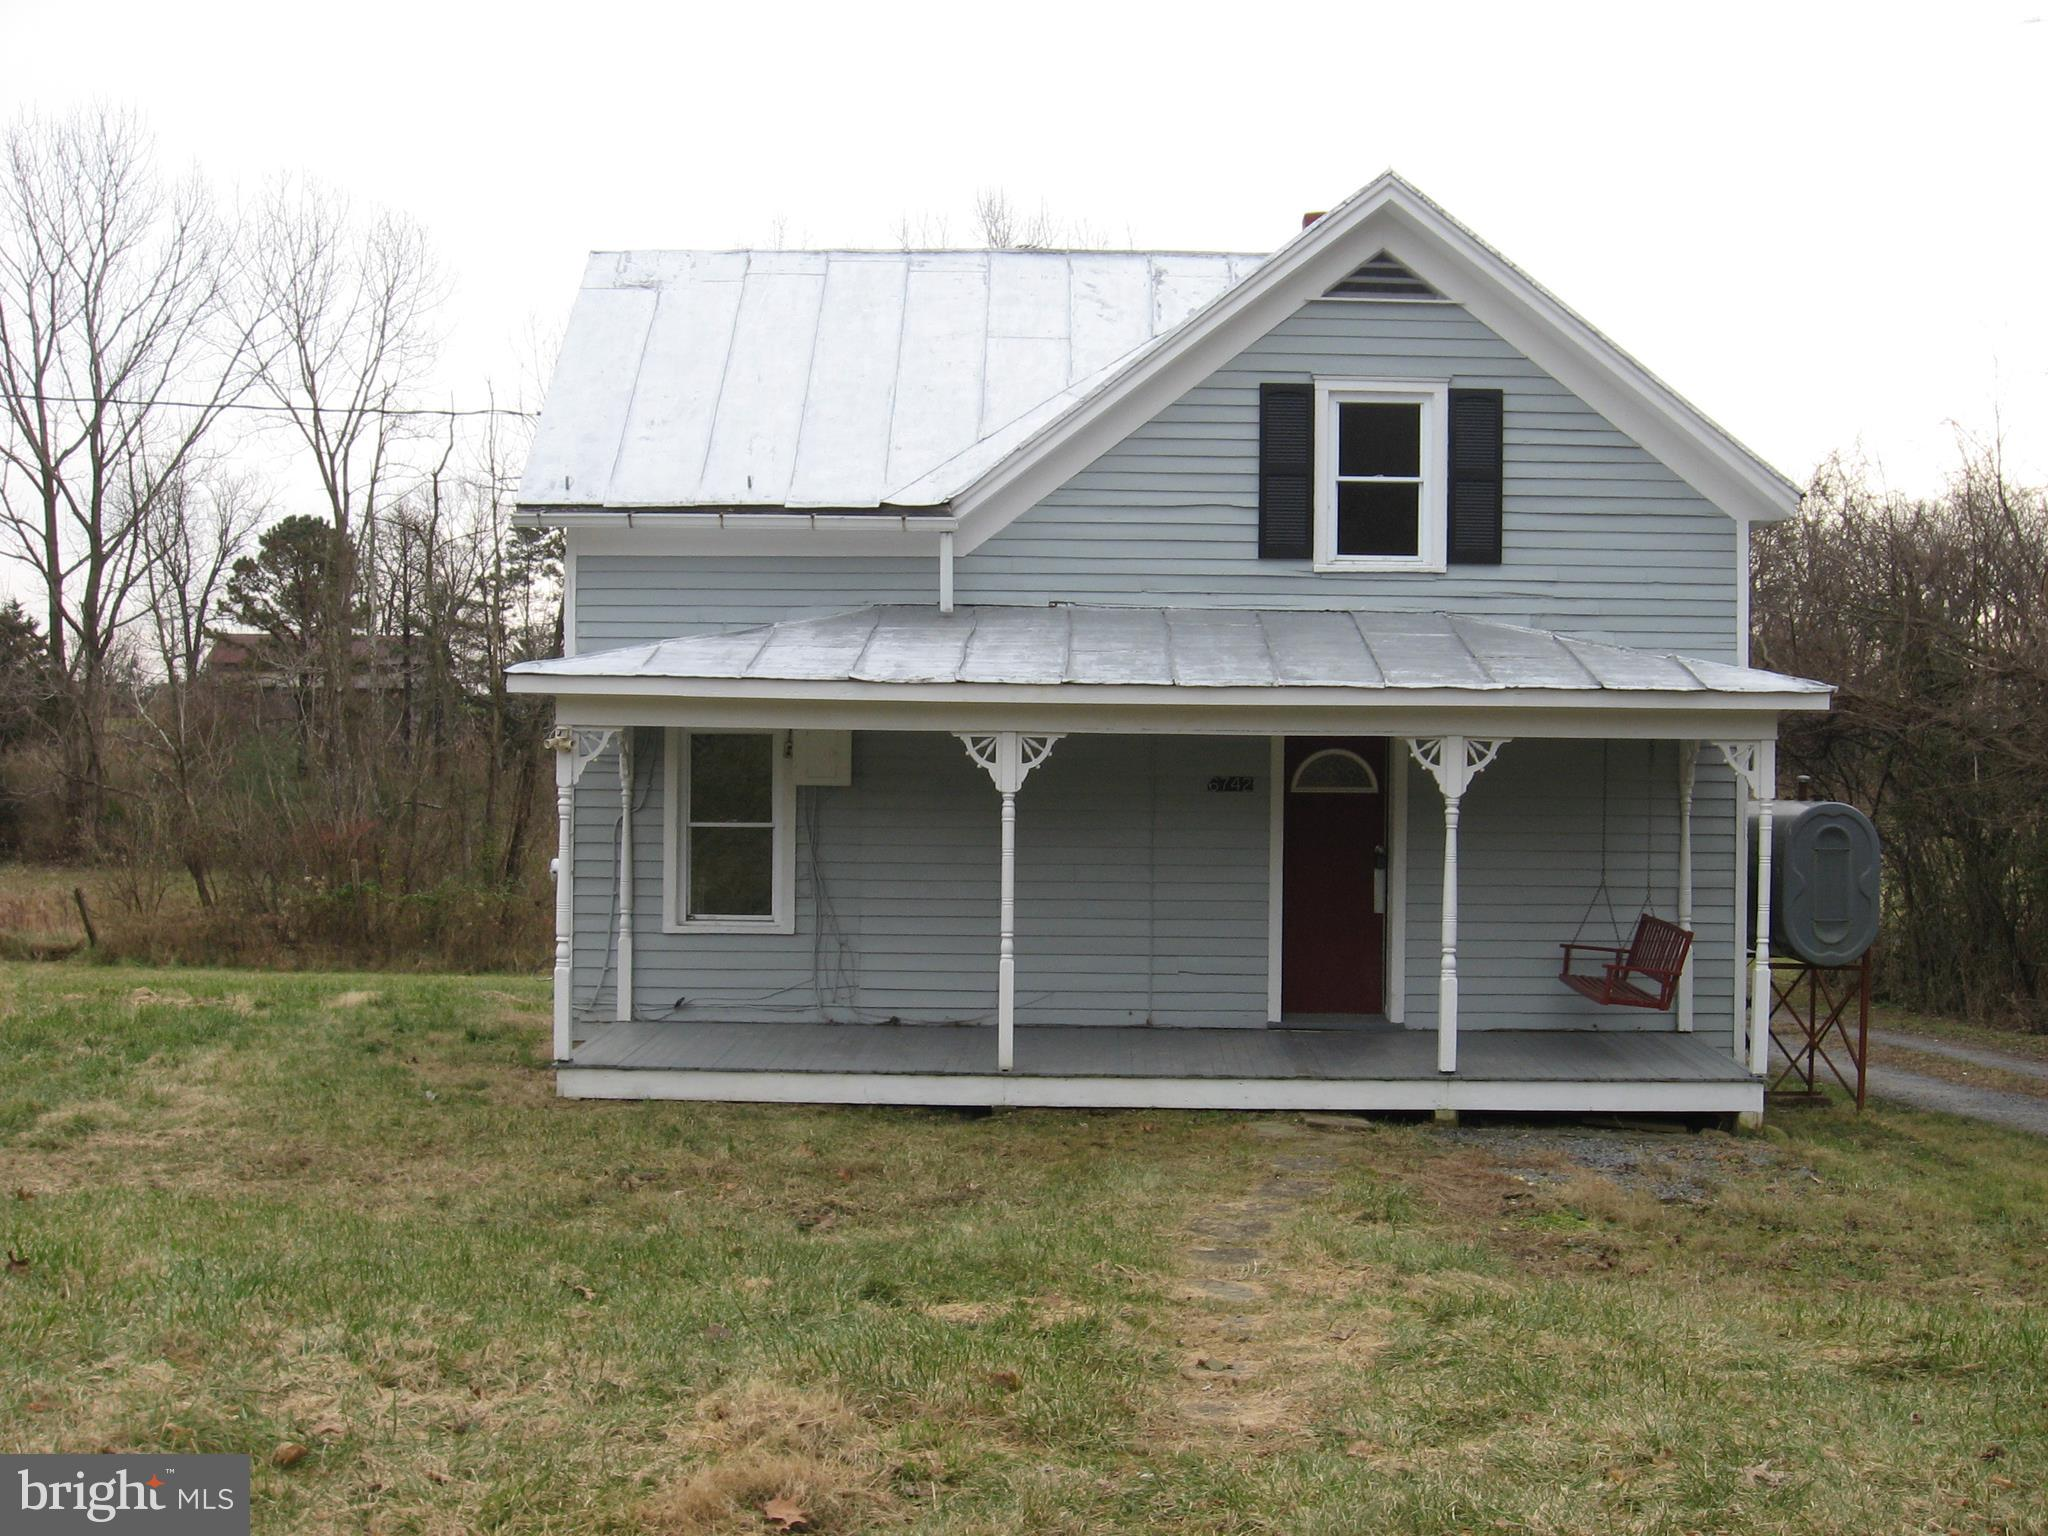 6742 BACK ROAD, MAURERTOWN, VA 22644